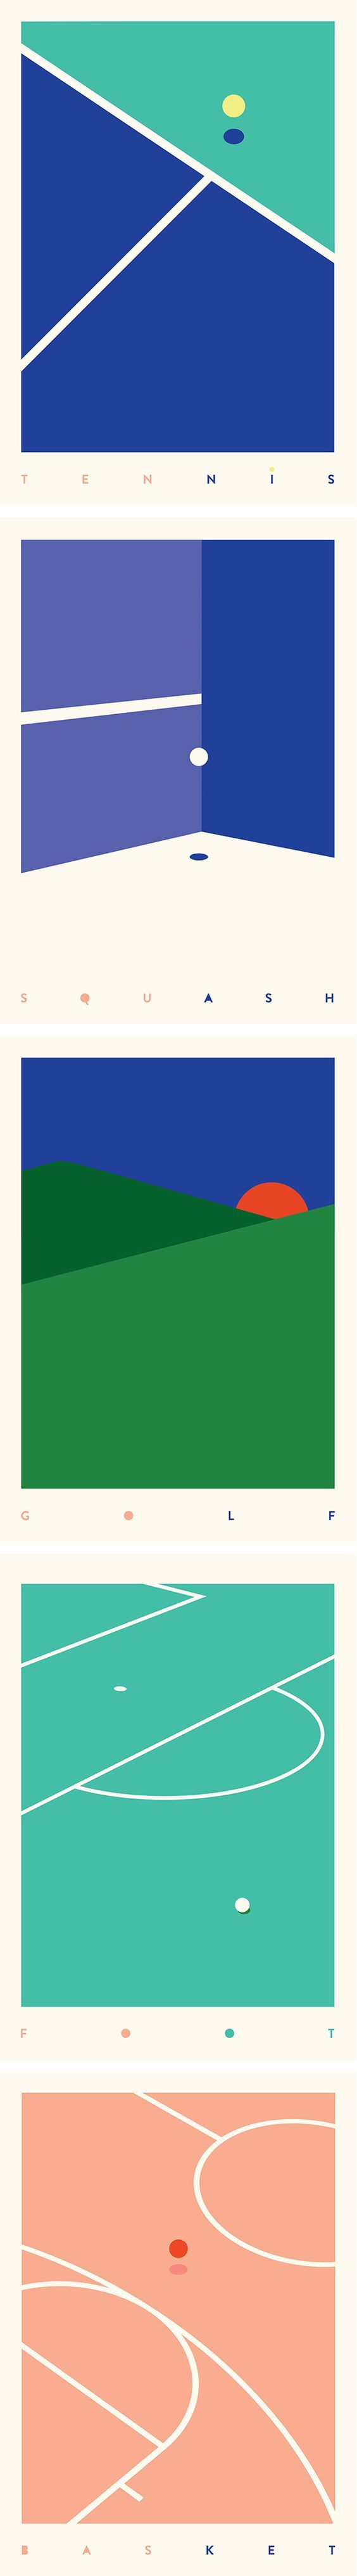 these minimalist posters convey a sense of order and direction and also not too obtrusive so being quite reserved.: